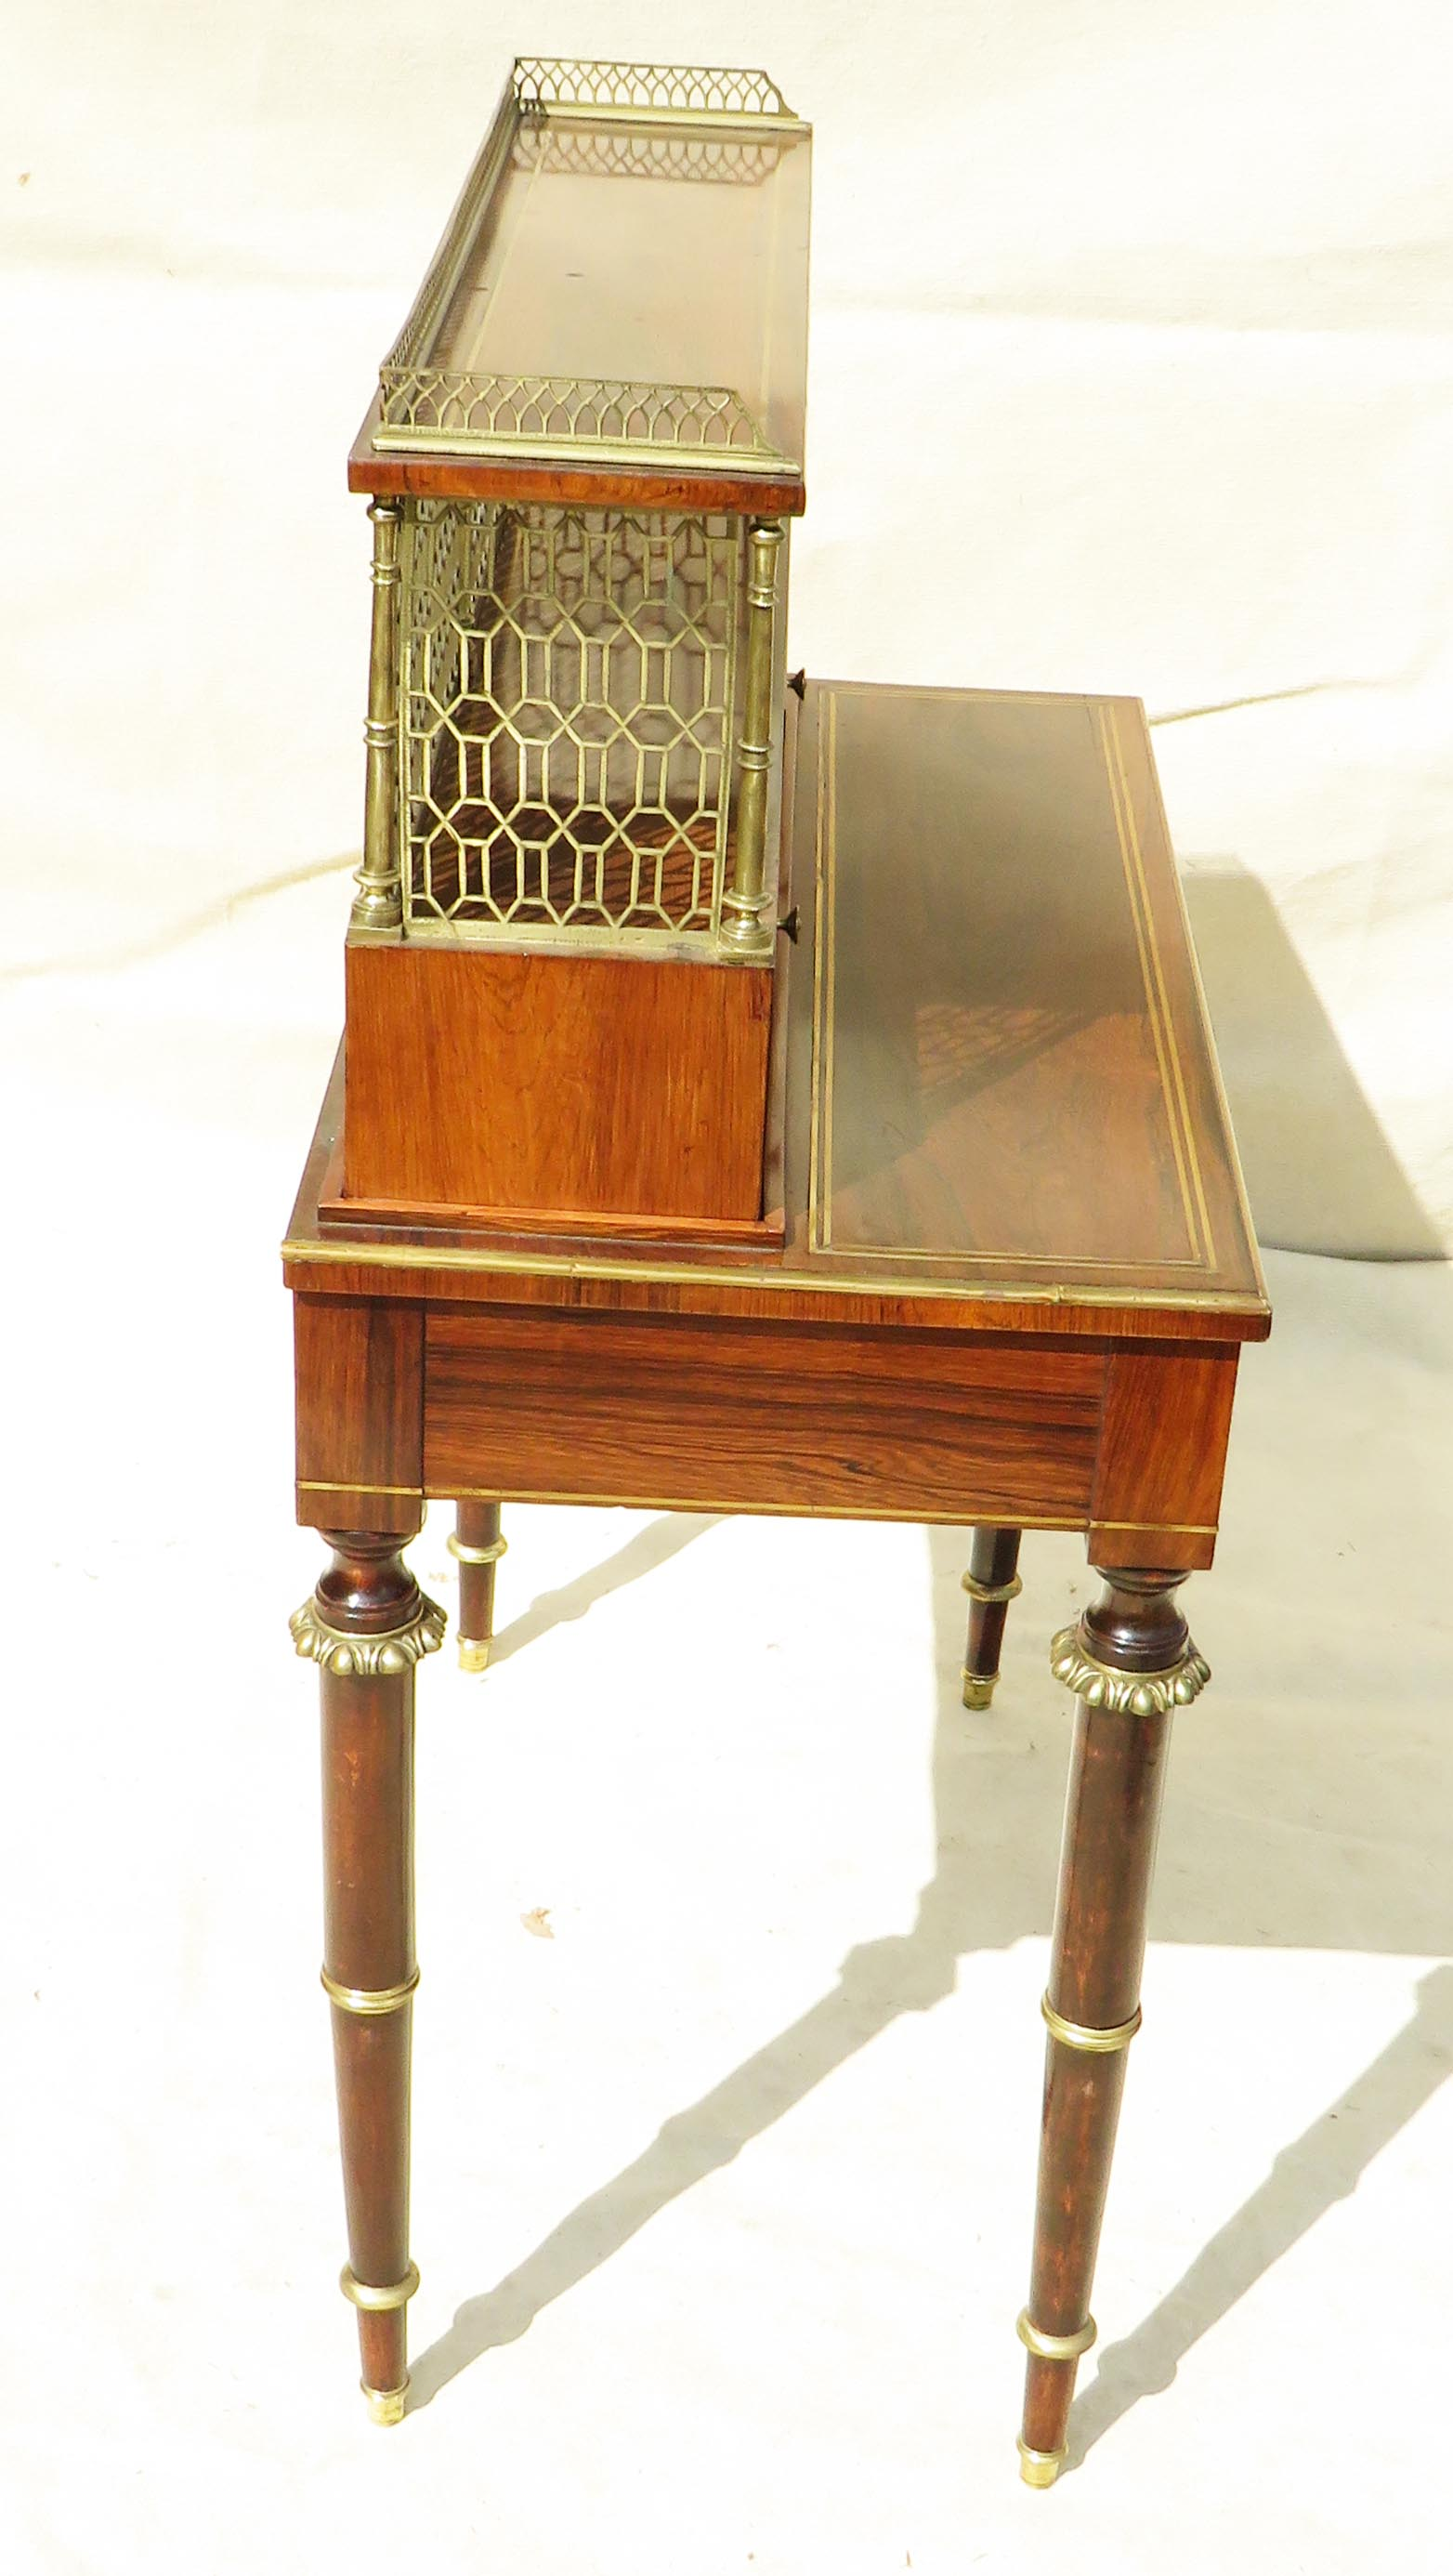 Superb quality Regency period early 19th Century rosewood bonheur du jour - Image 7 of 7